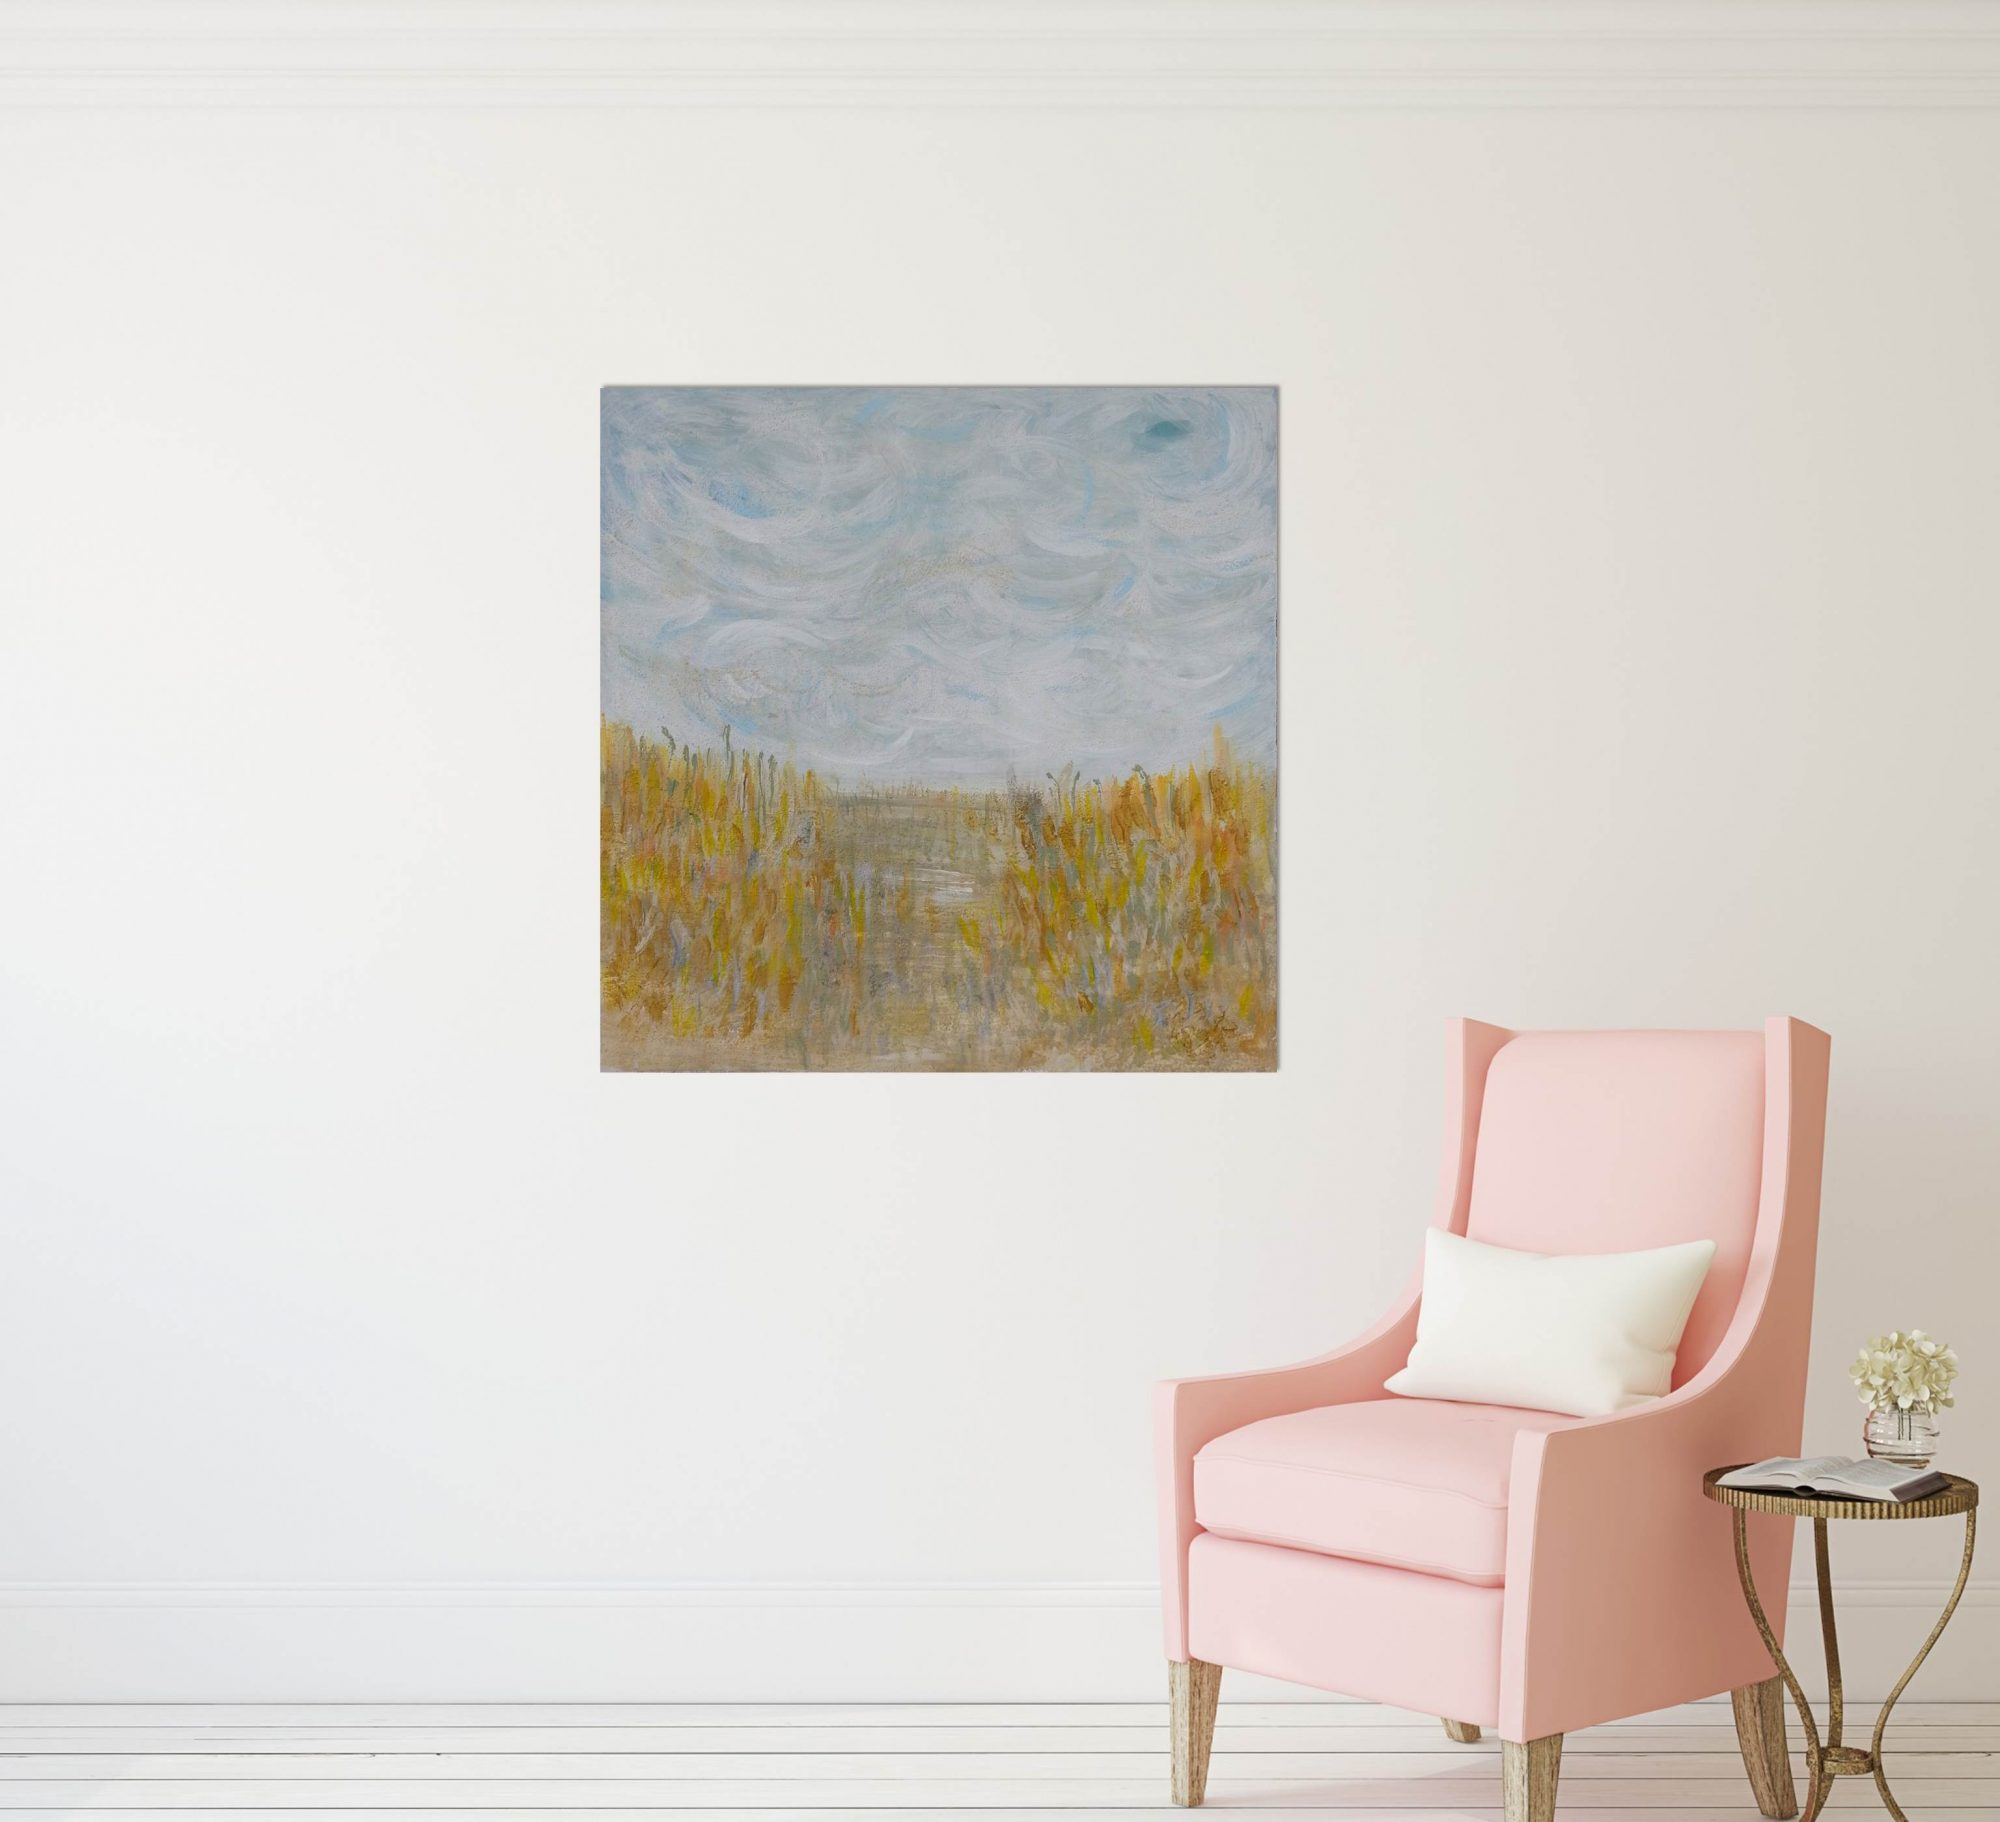 golden-dune-with-pink-chair